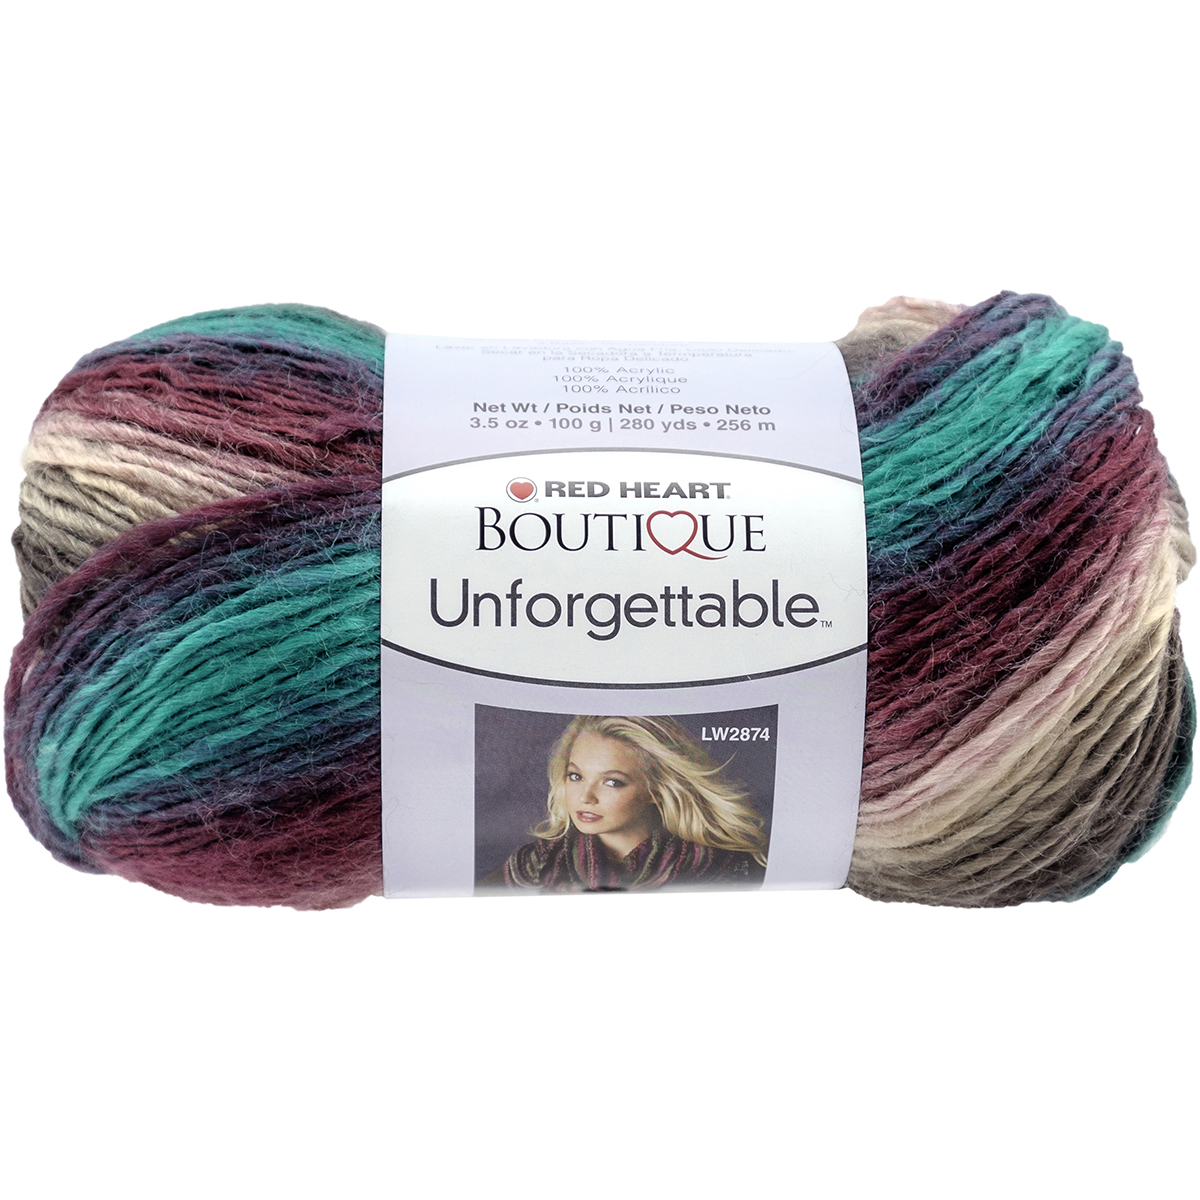 Red Heart Boutique Unforgettable Yarn-Tealberry